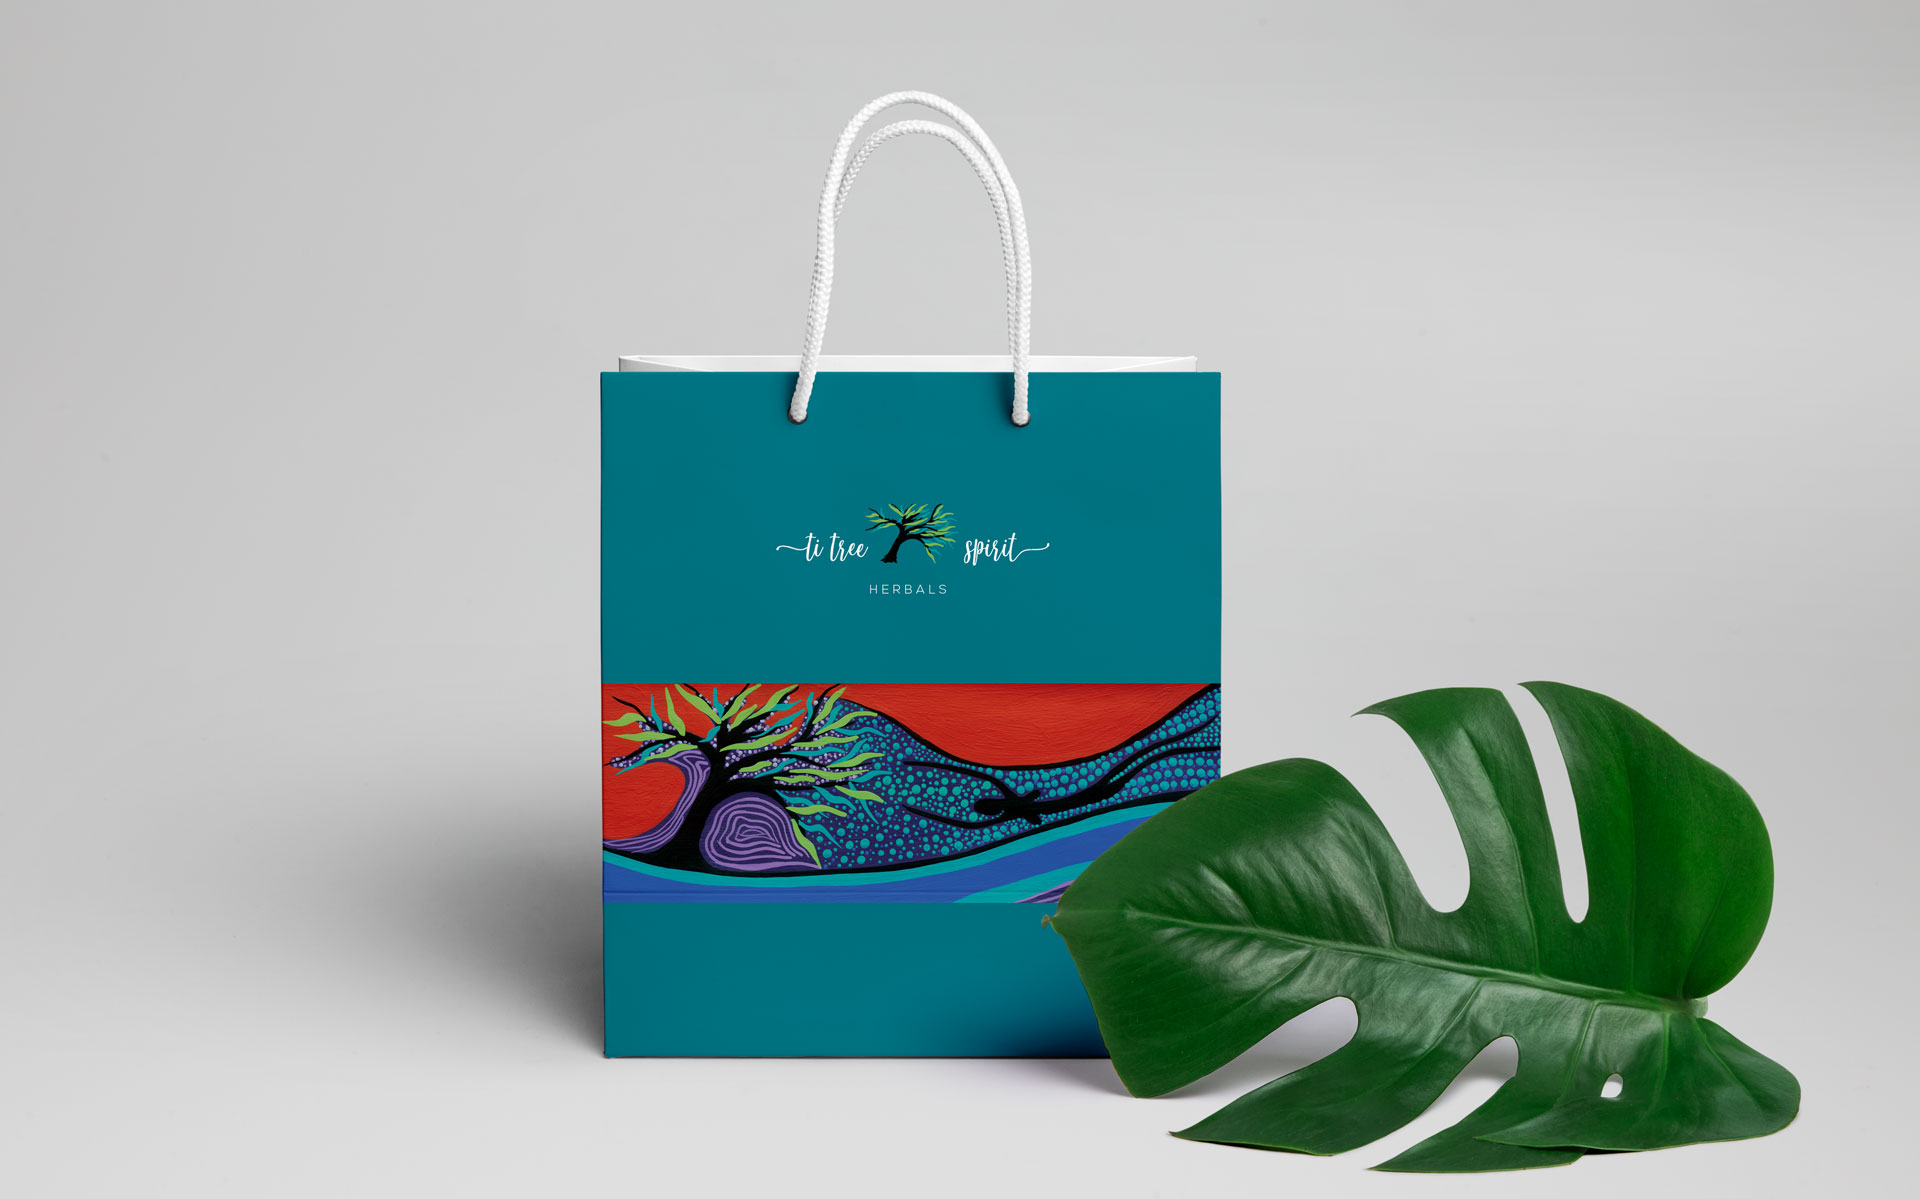 TiTree Spirit Herbals logo, branding, packaging, marketing, events & online designed by Amy at Yellow Sunday